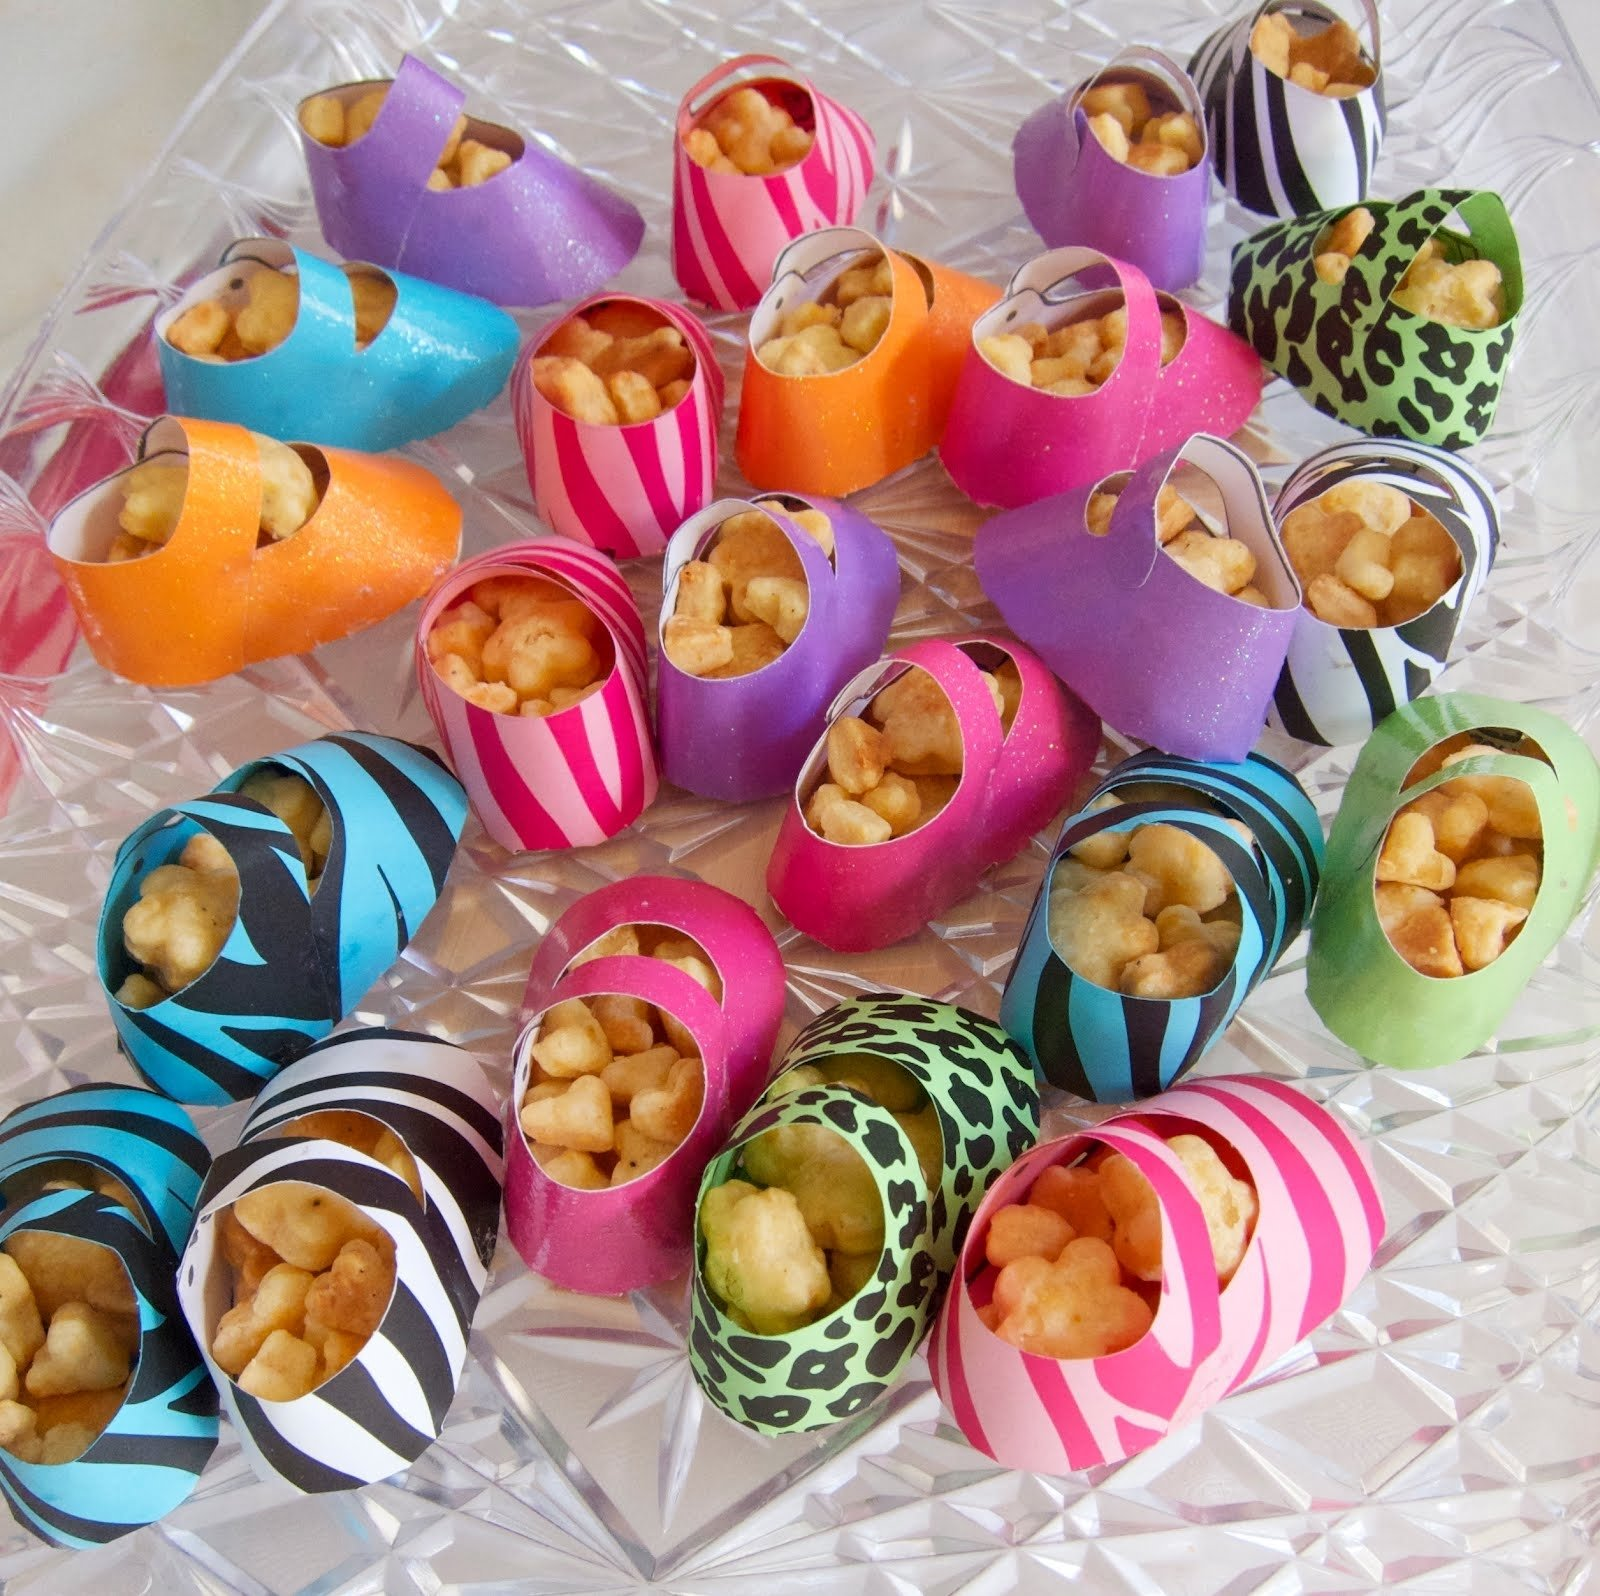 10 Unique Baby Shower Food Ideas For A Girl girl baby shower food ideas wedding 1 2020